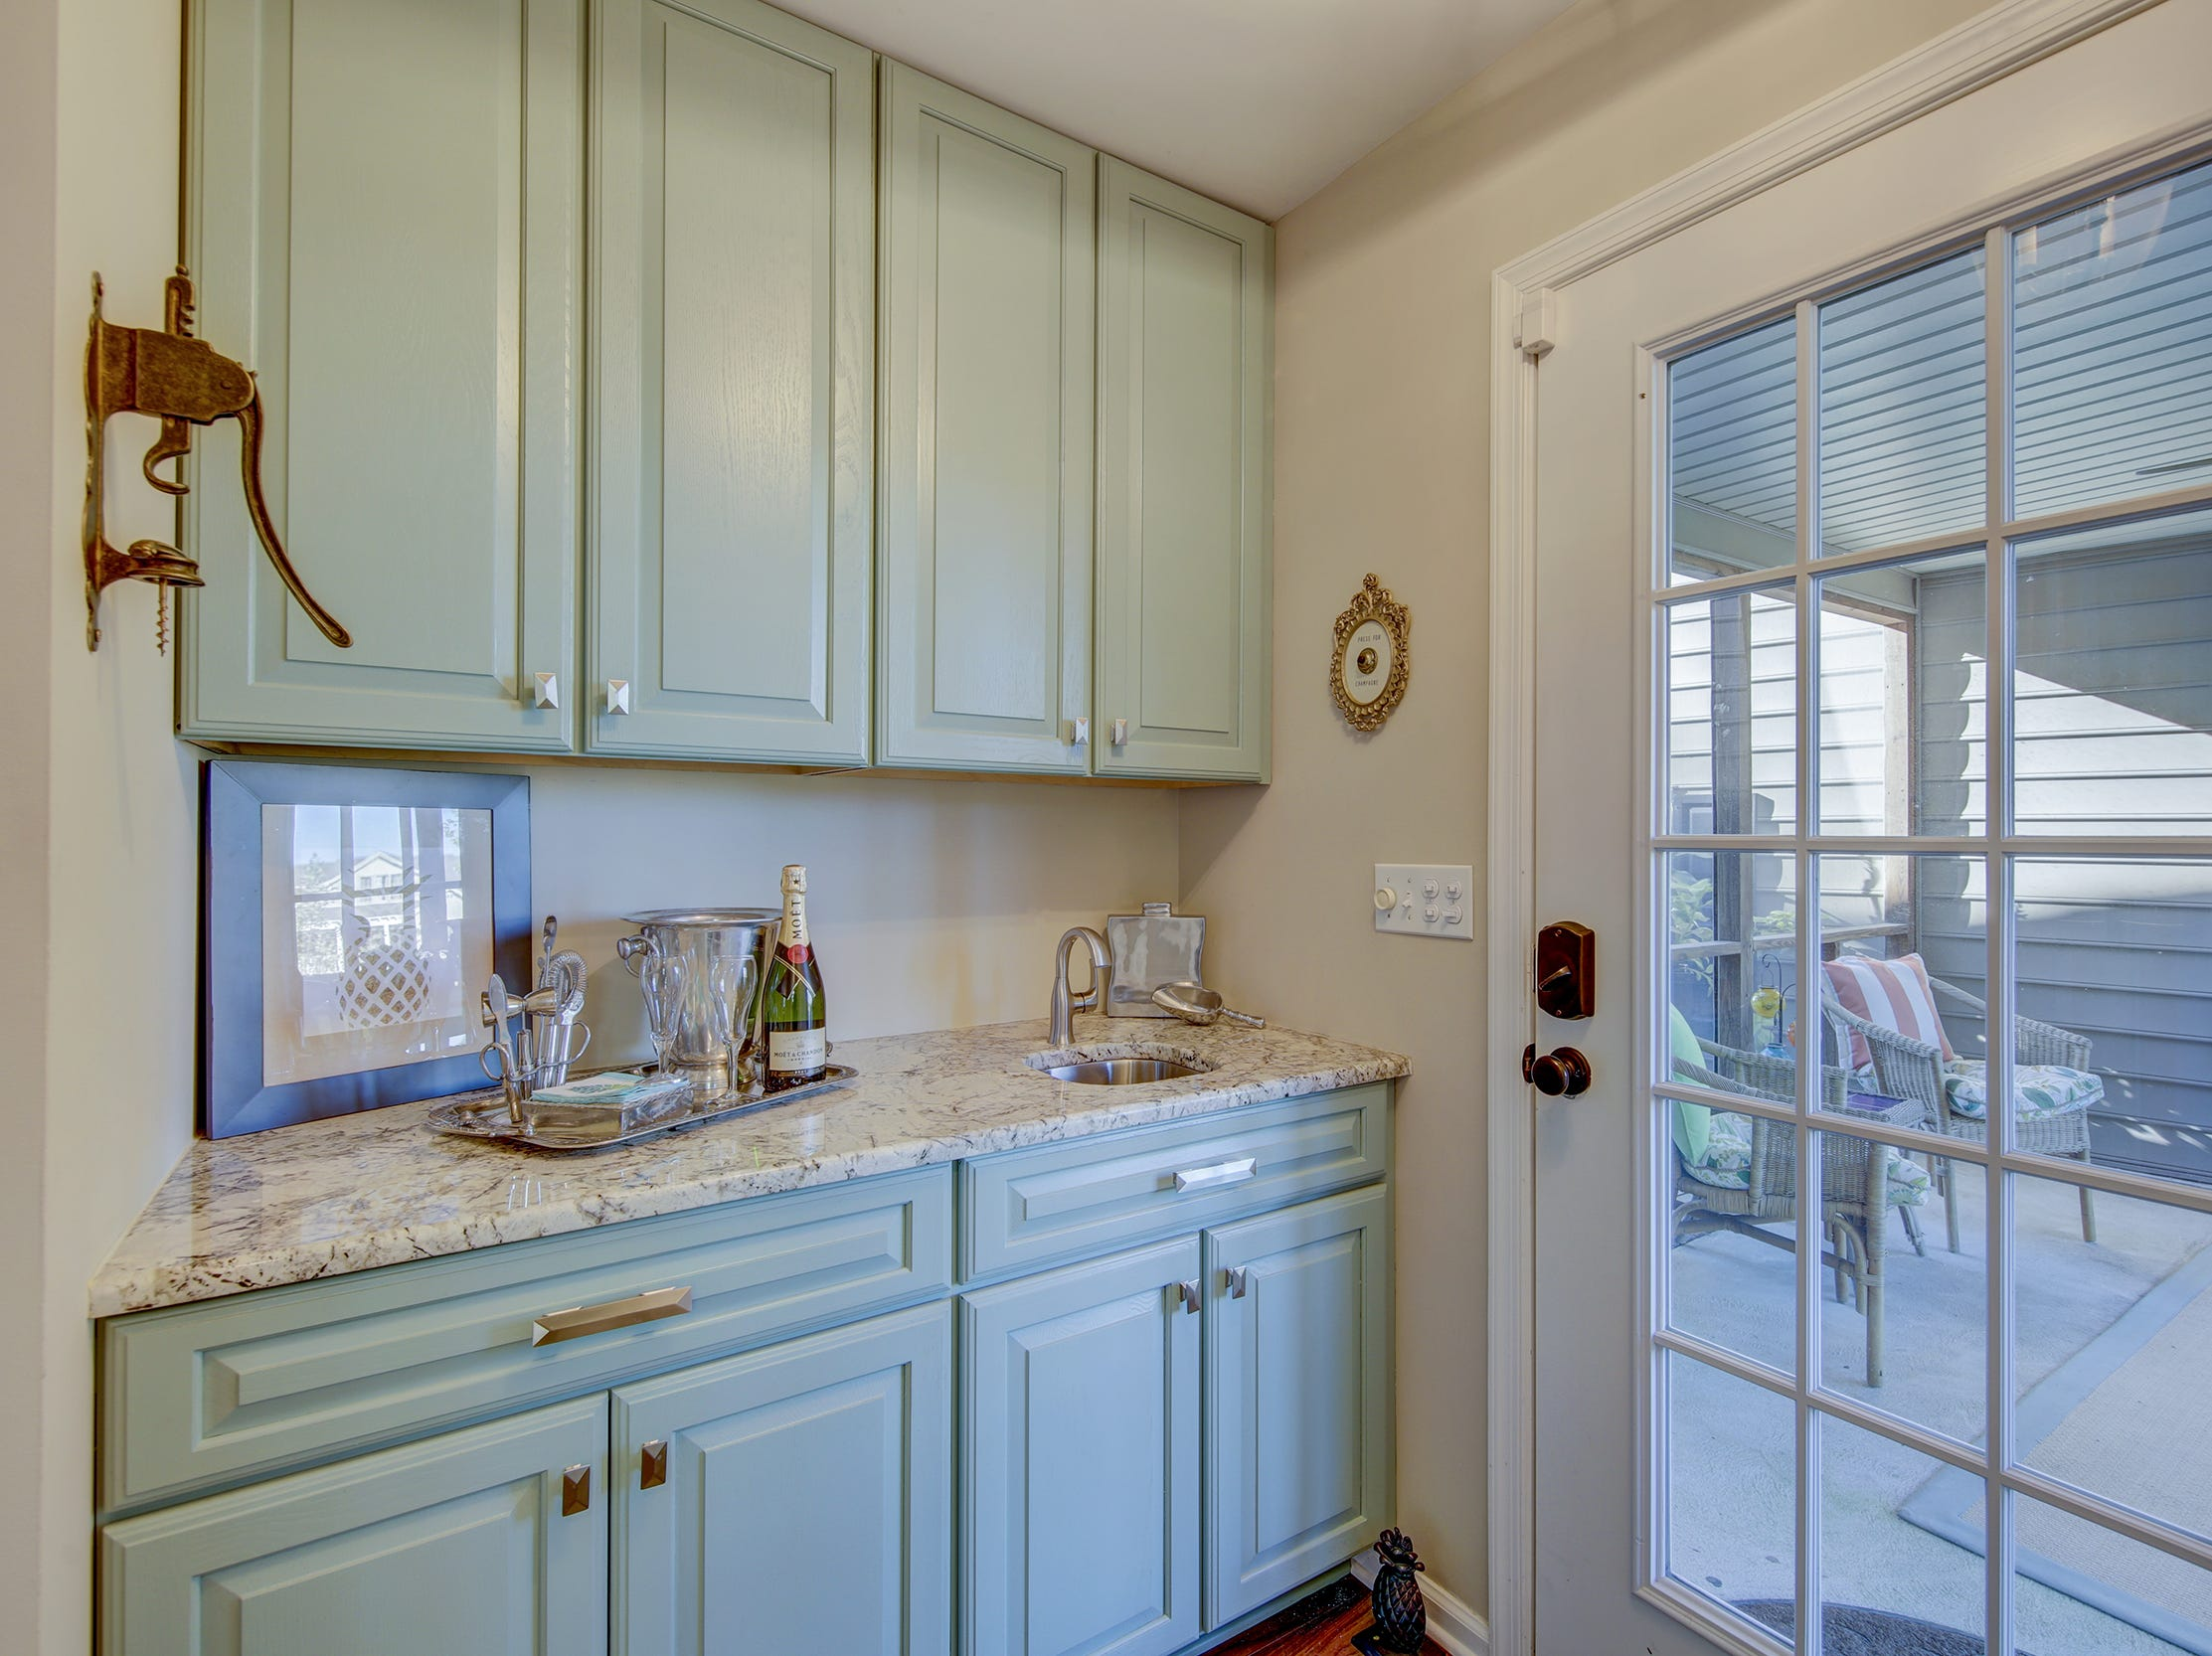 A bar area is sited between the kitchen and screened porch at 204 Lakeview Shores in Rehoboth Beach.